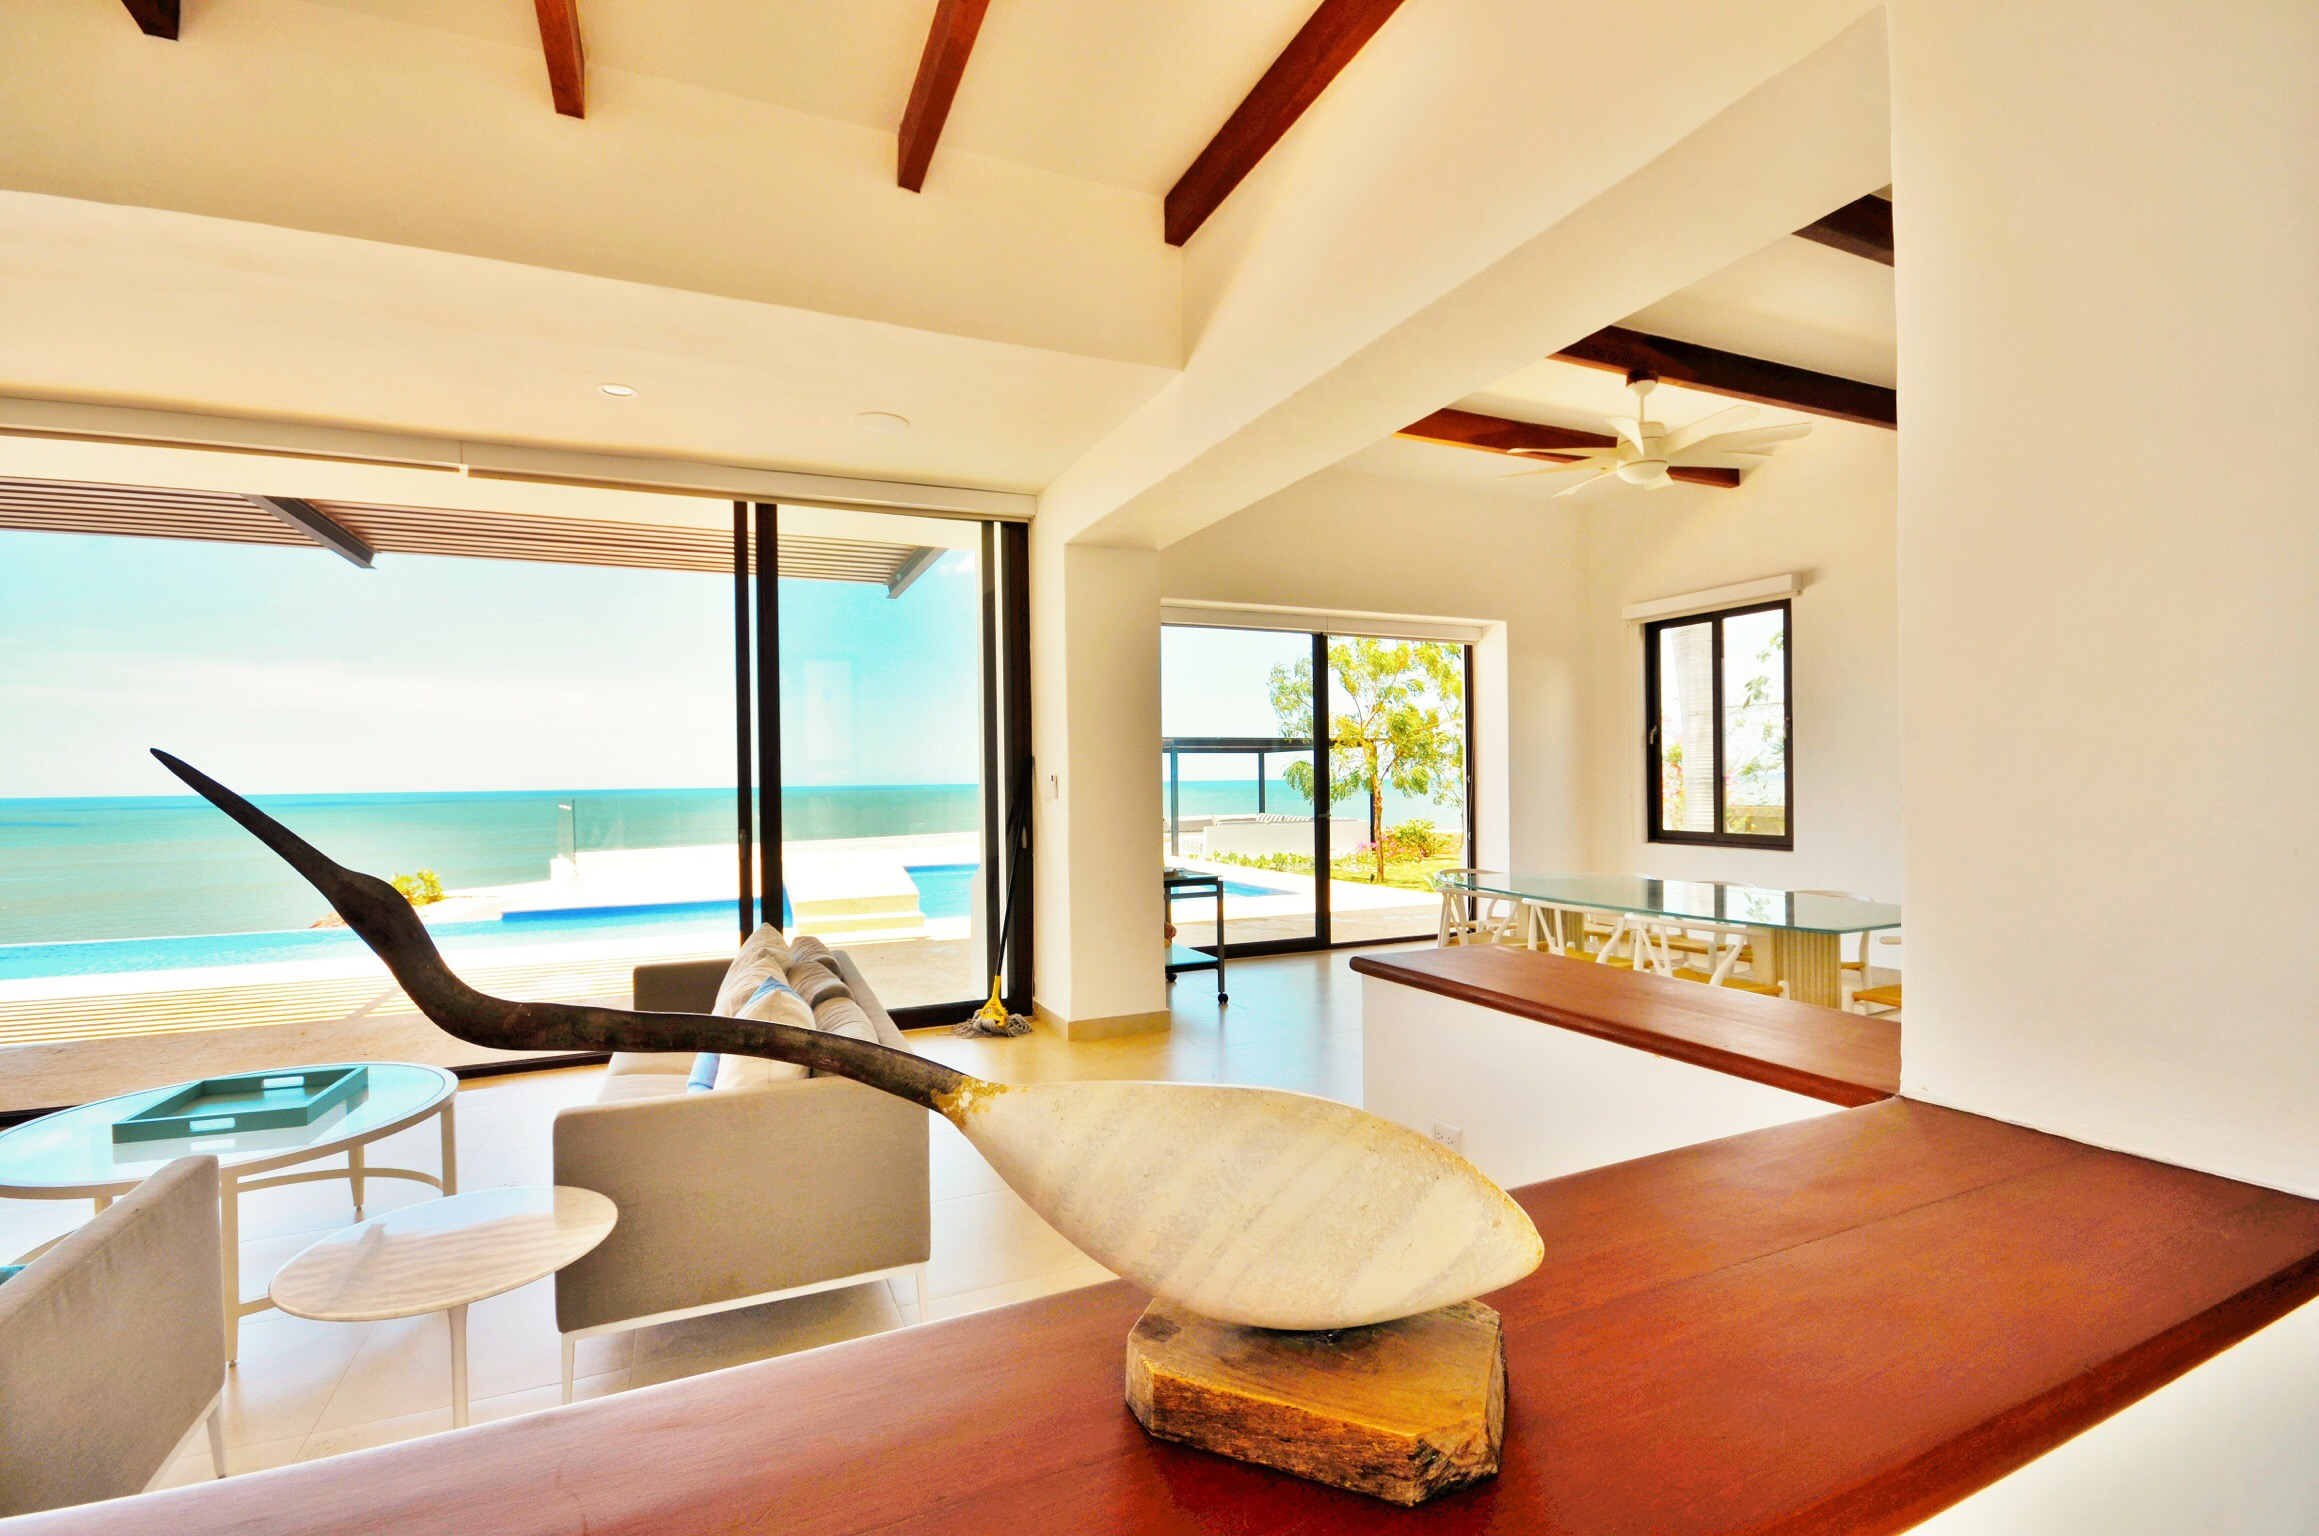 Wonderful beach, soothing view, interior design, best architect work, Sorrento Beach Residence